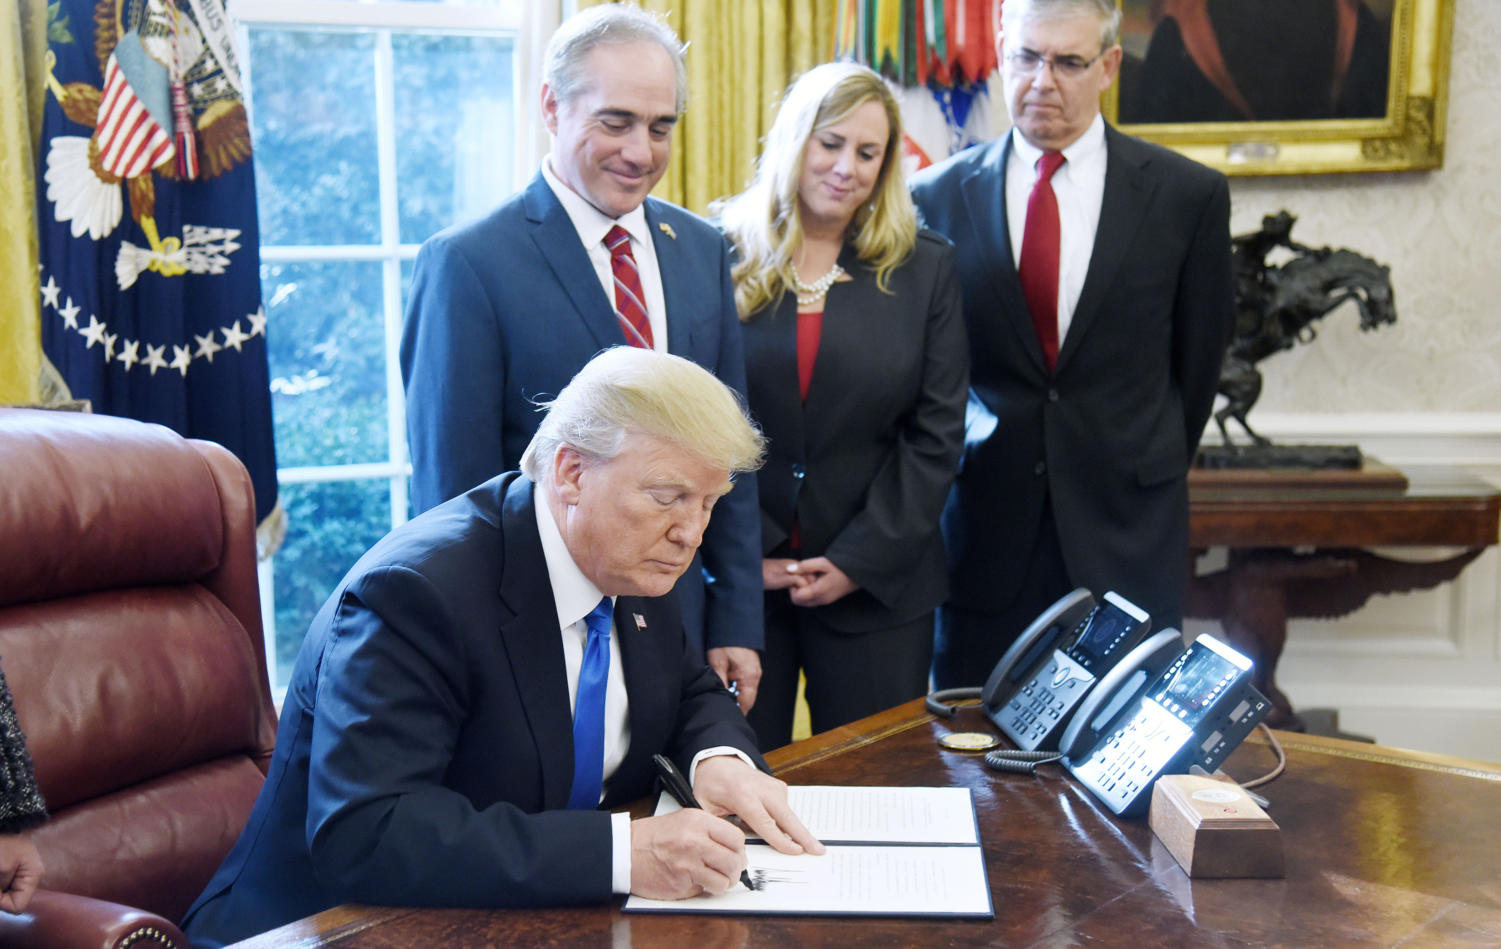 U.S President Donald Trump signs an Executive Order on